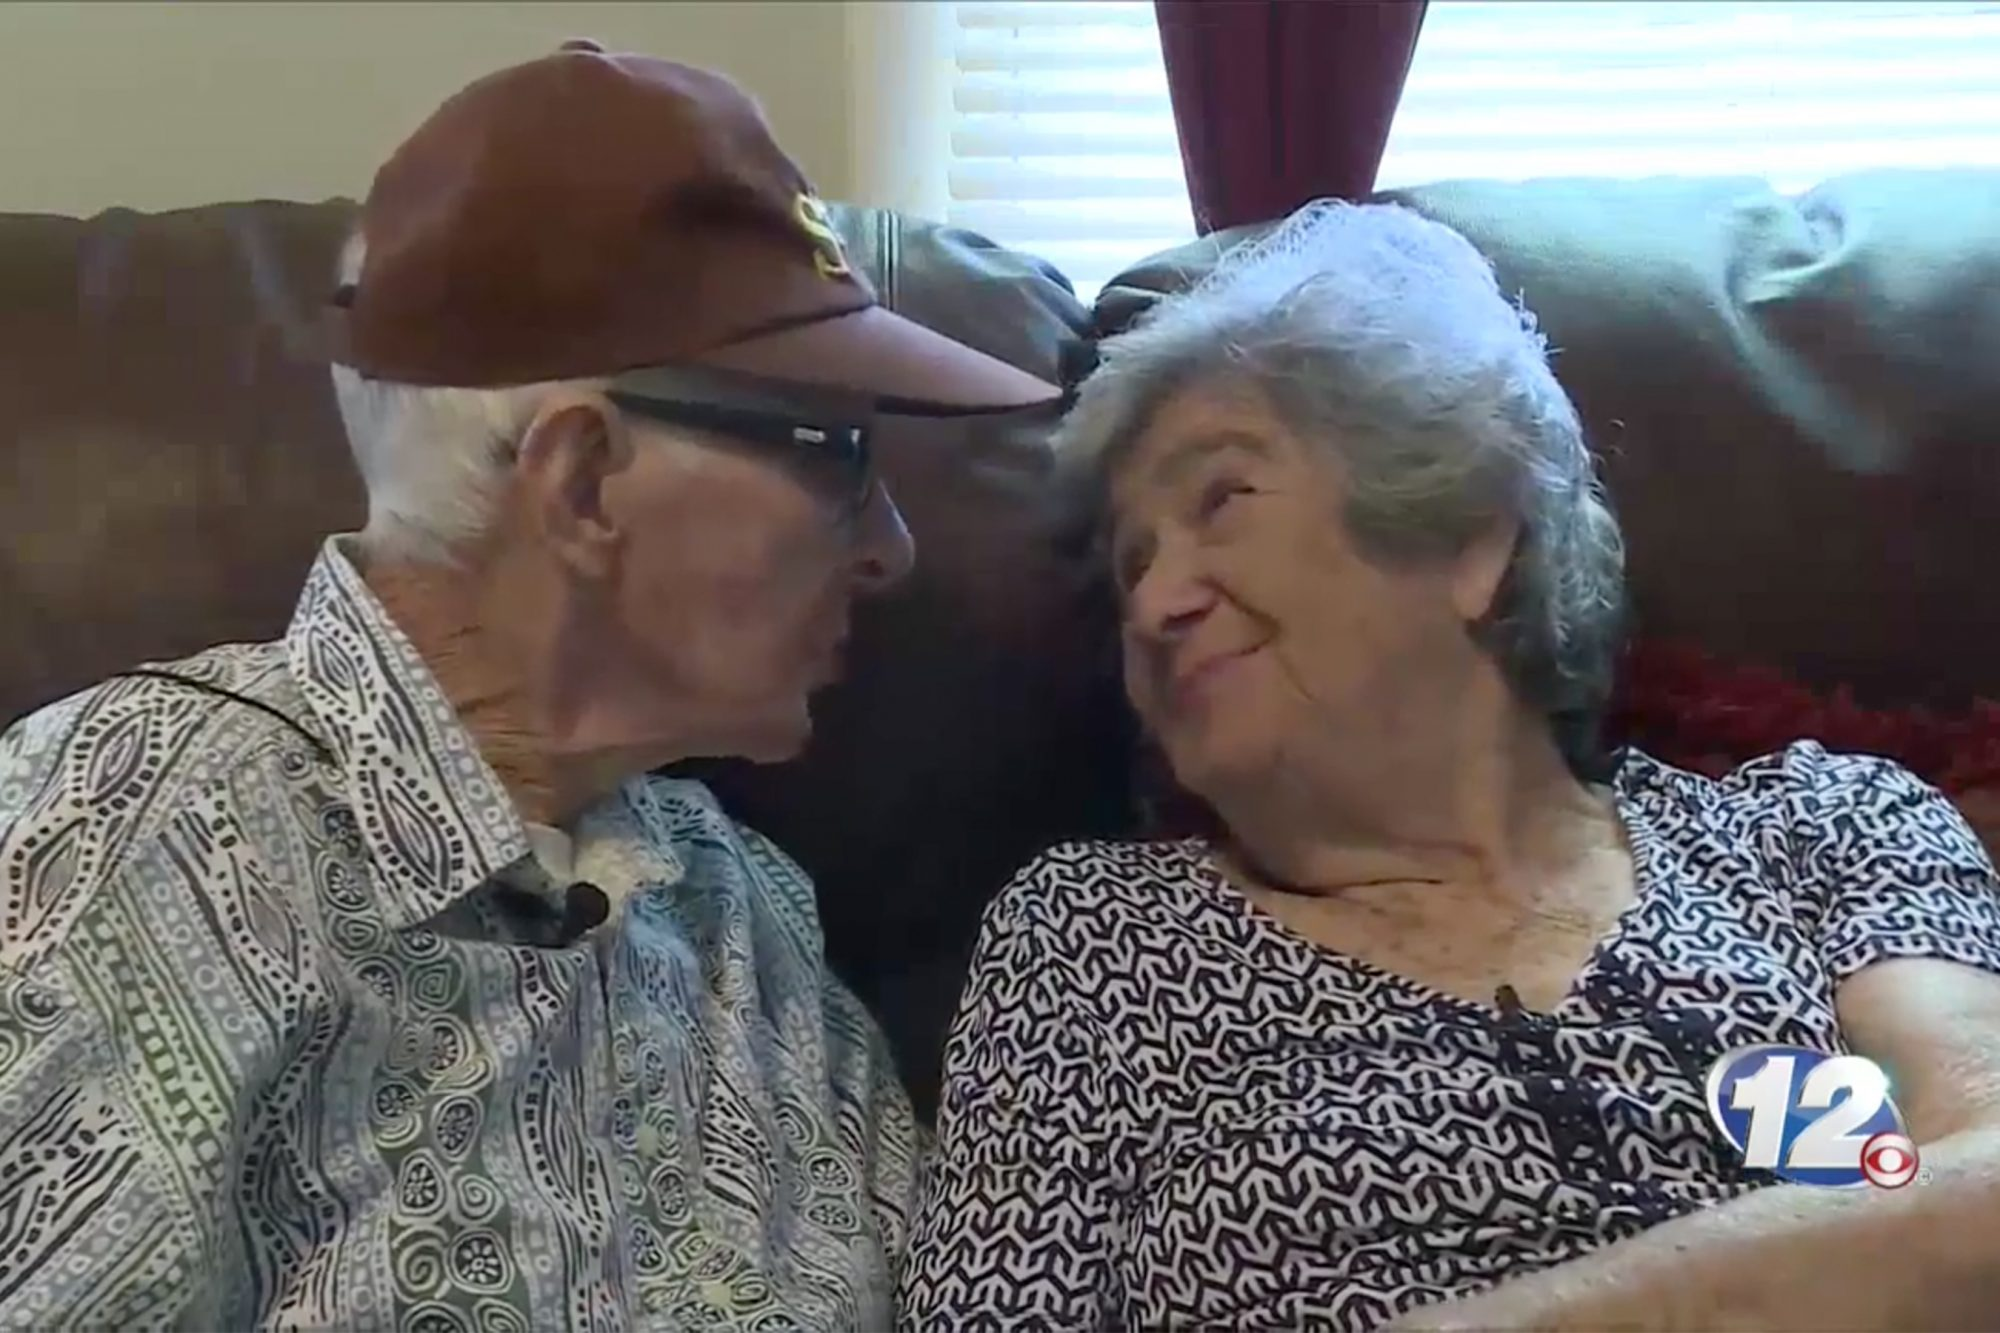 Herbert and Frances Delaigle died just hours apart